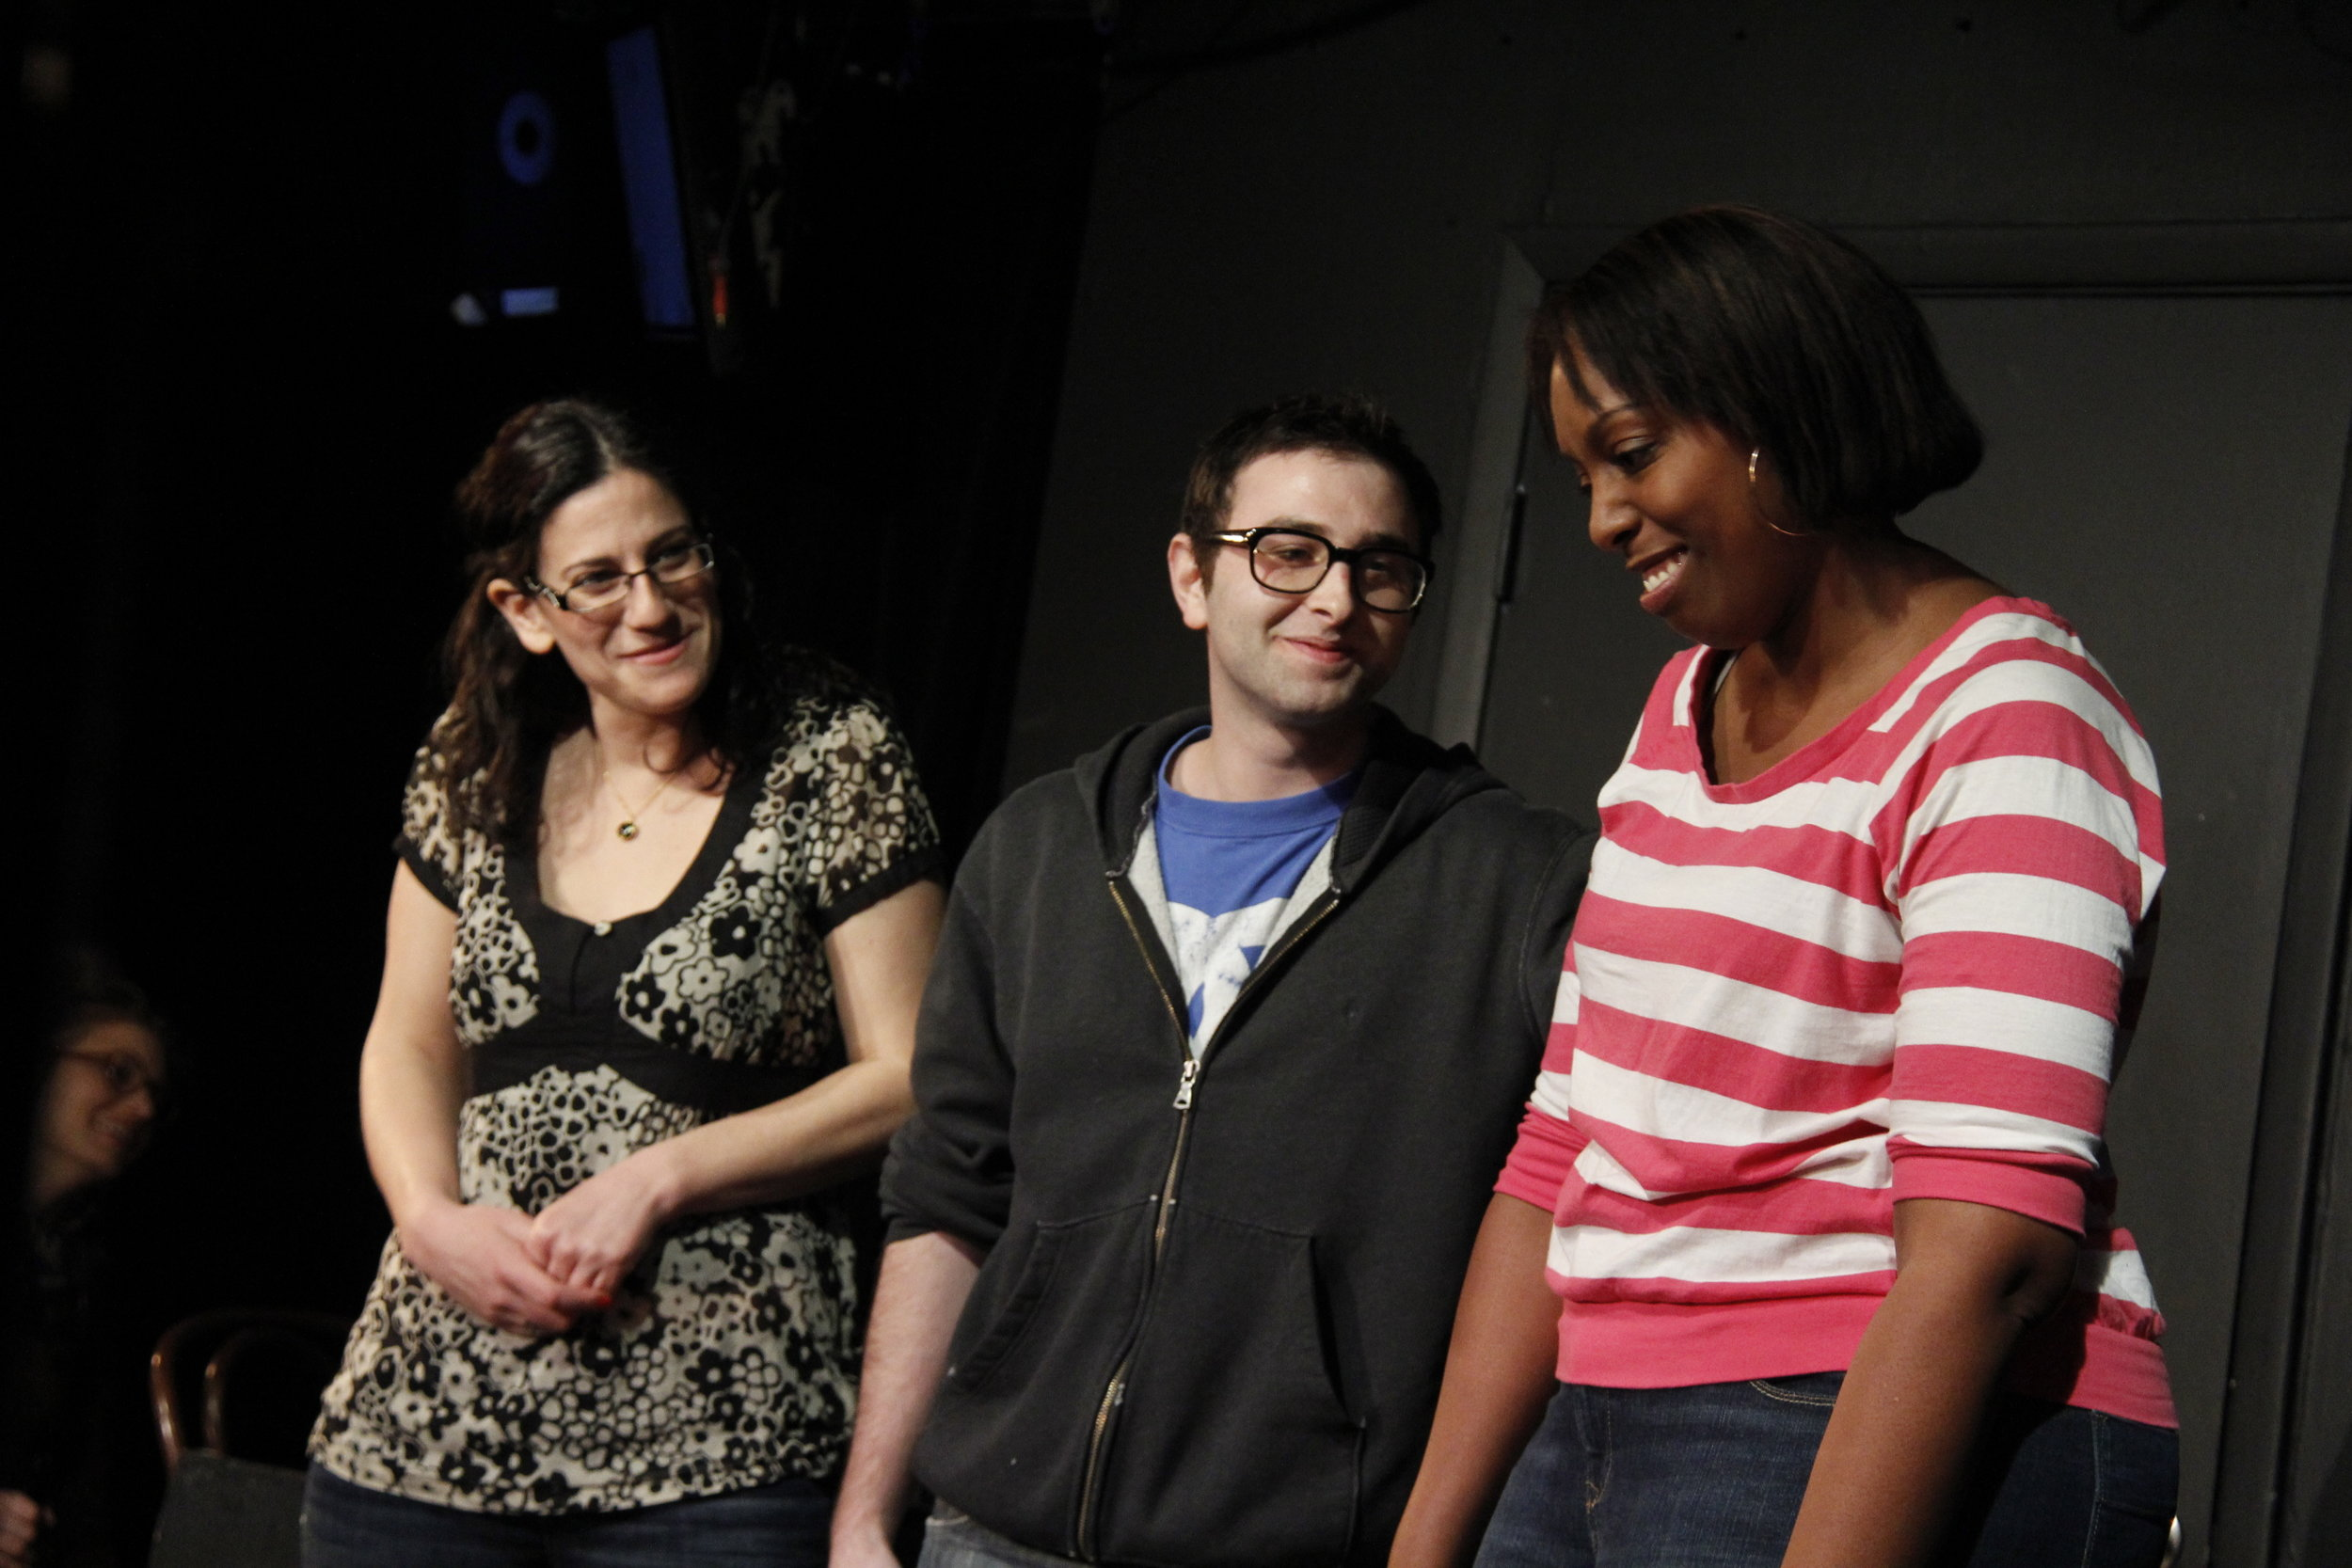 Boris, Julia, and myself at UCB Cagematch circa 2011 or so. Babies!